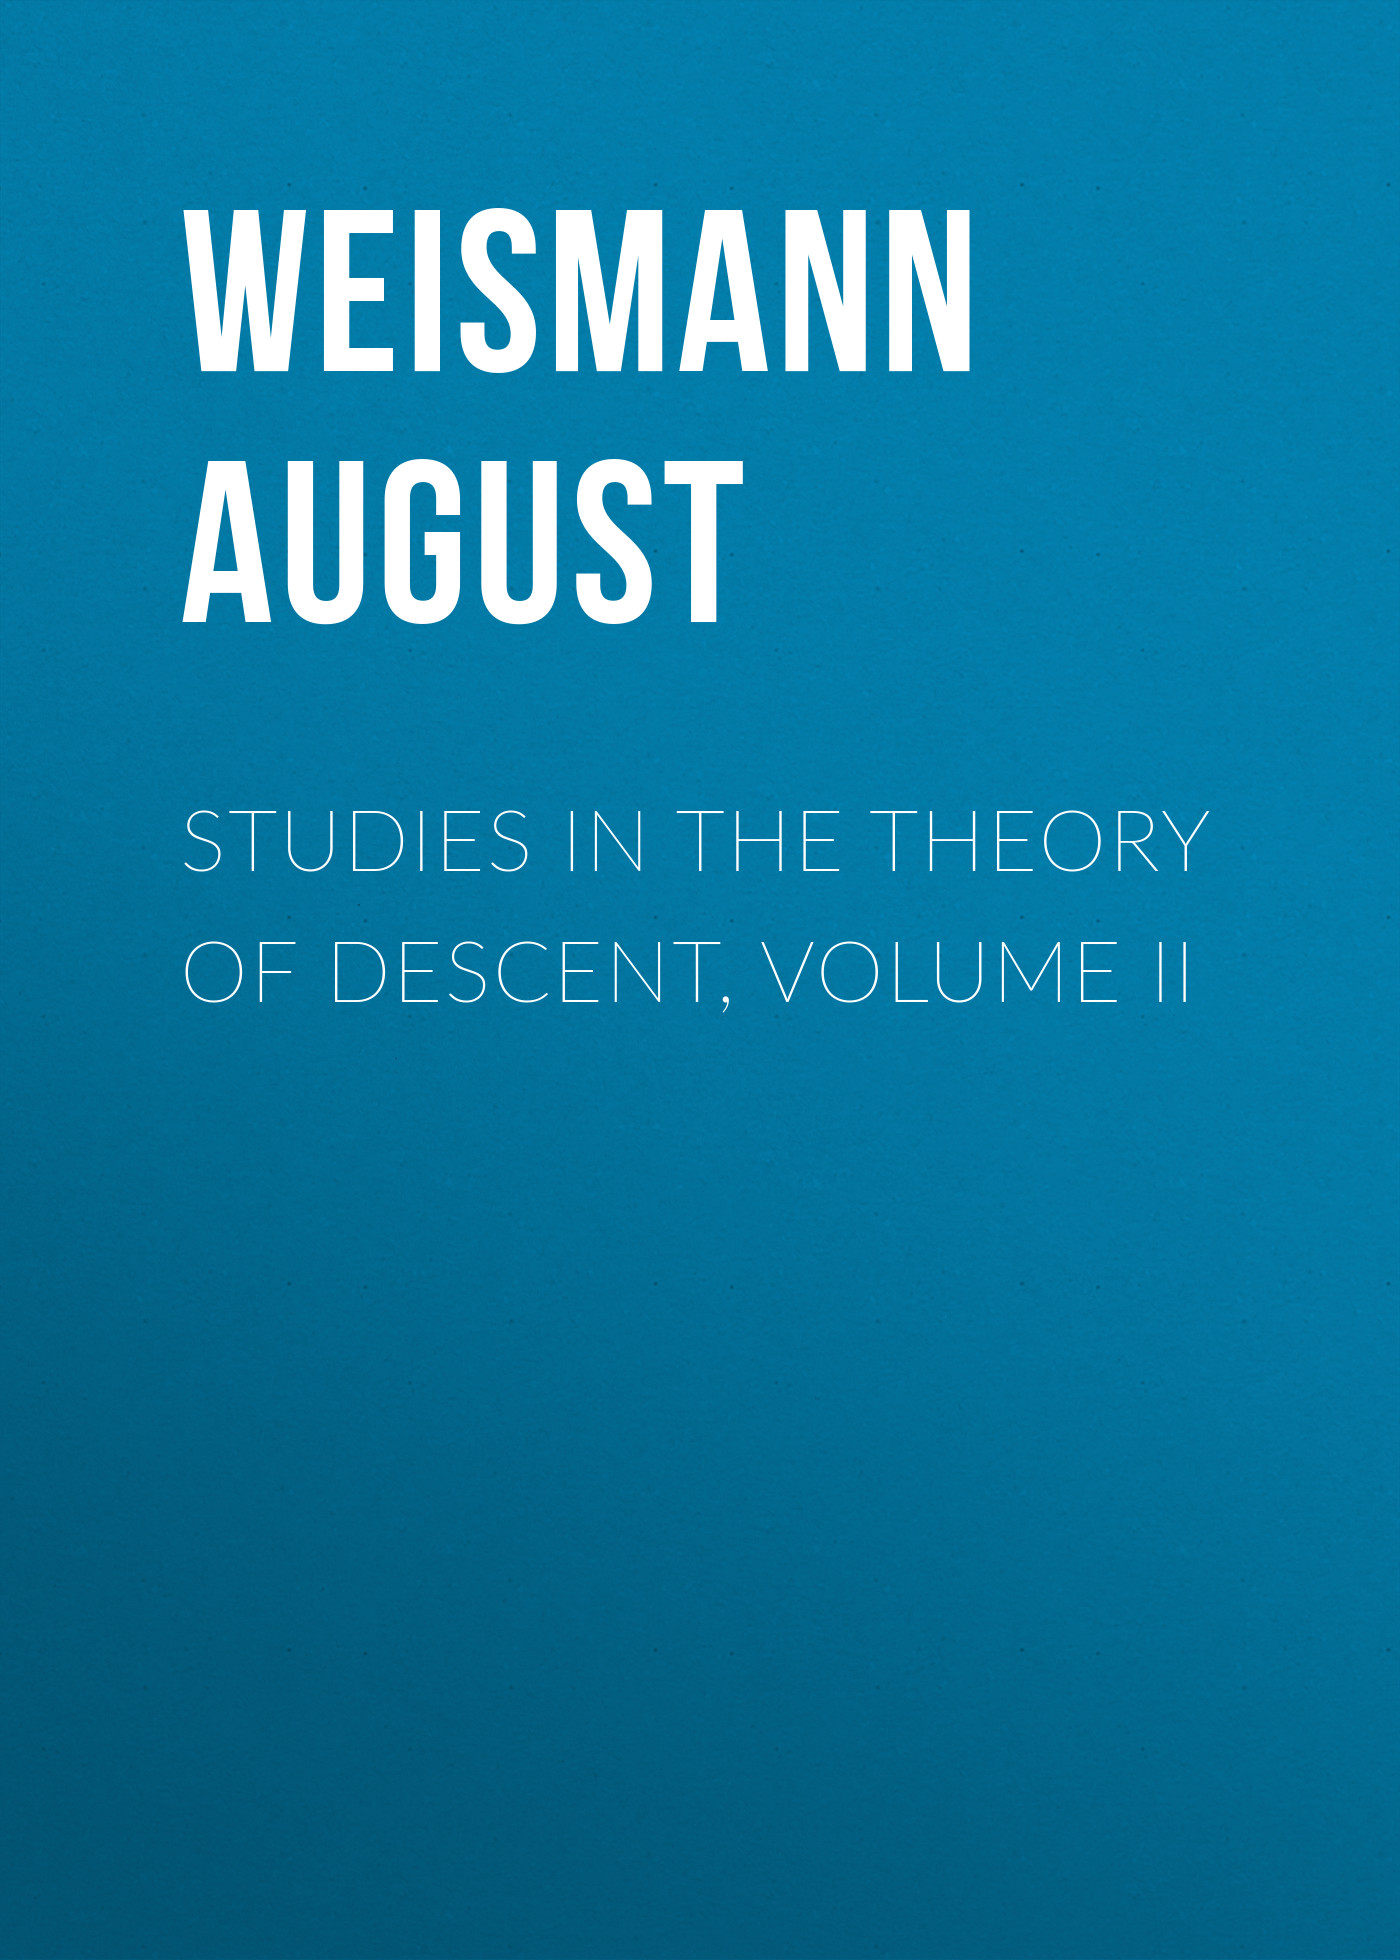 Weismann August Studies in the Theory of Descent, Volume II studies in business cycle theory paper